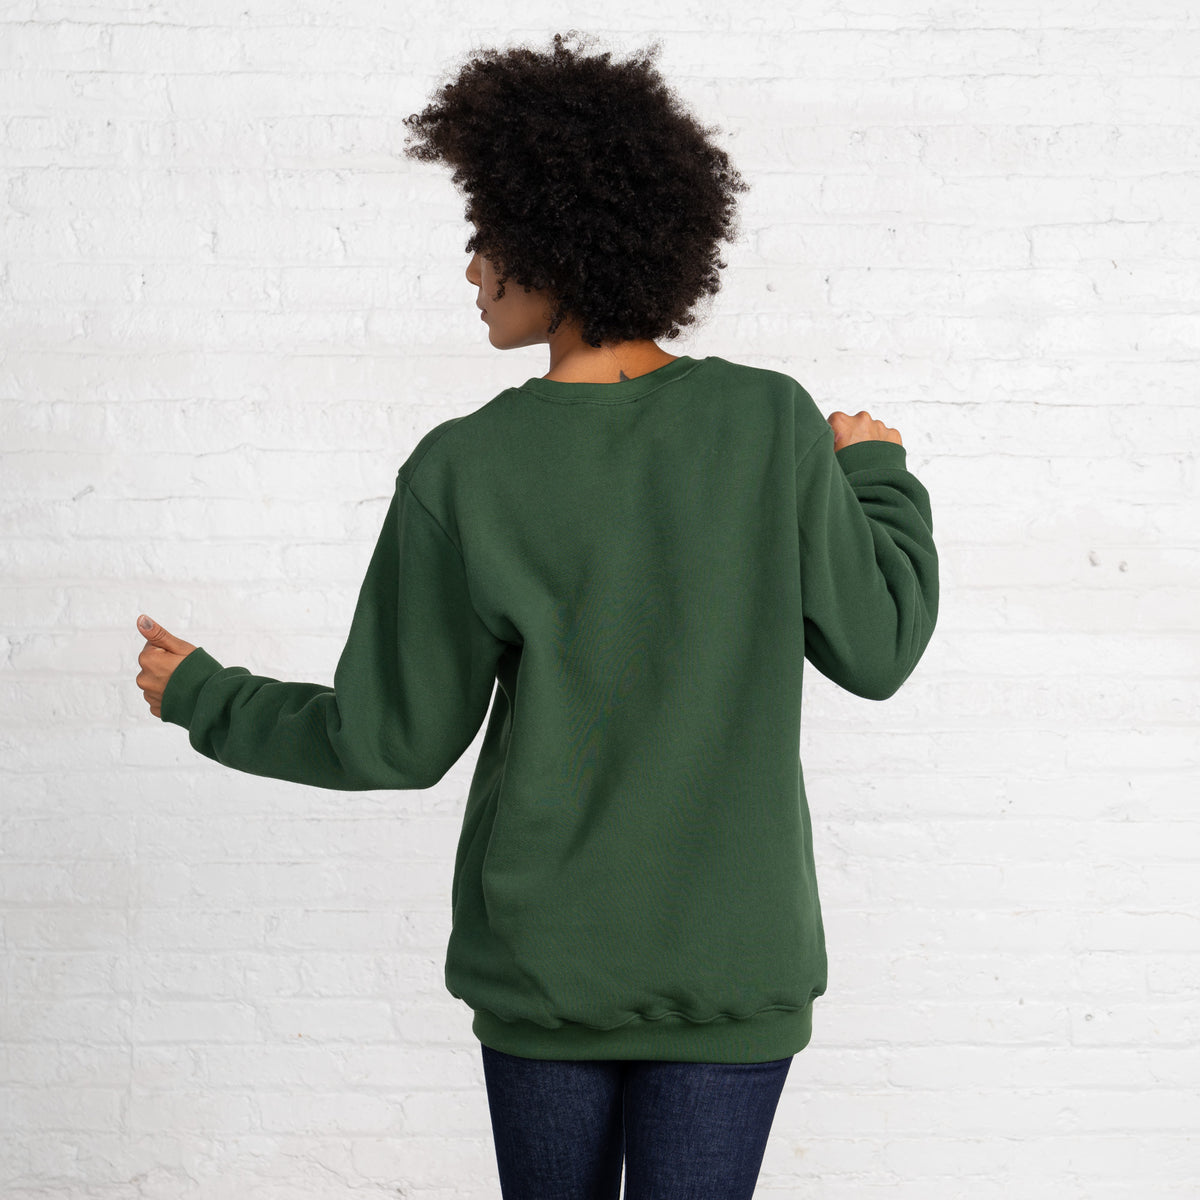 Color:Dark Green 3 Thread Fleece Men's Sweatshirts Sweatshirts